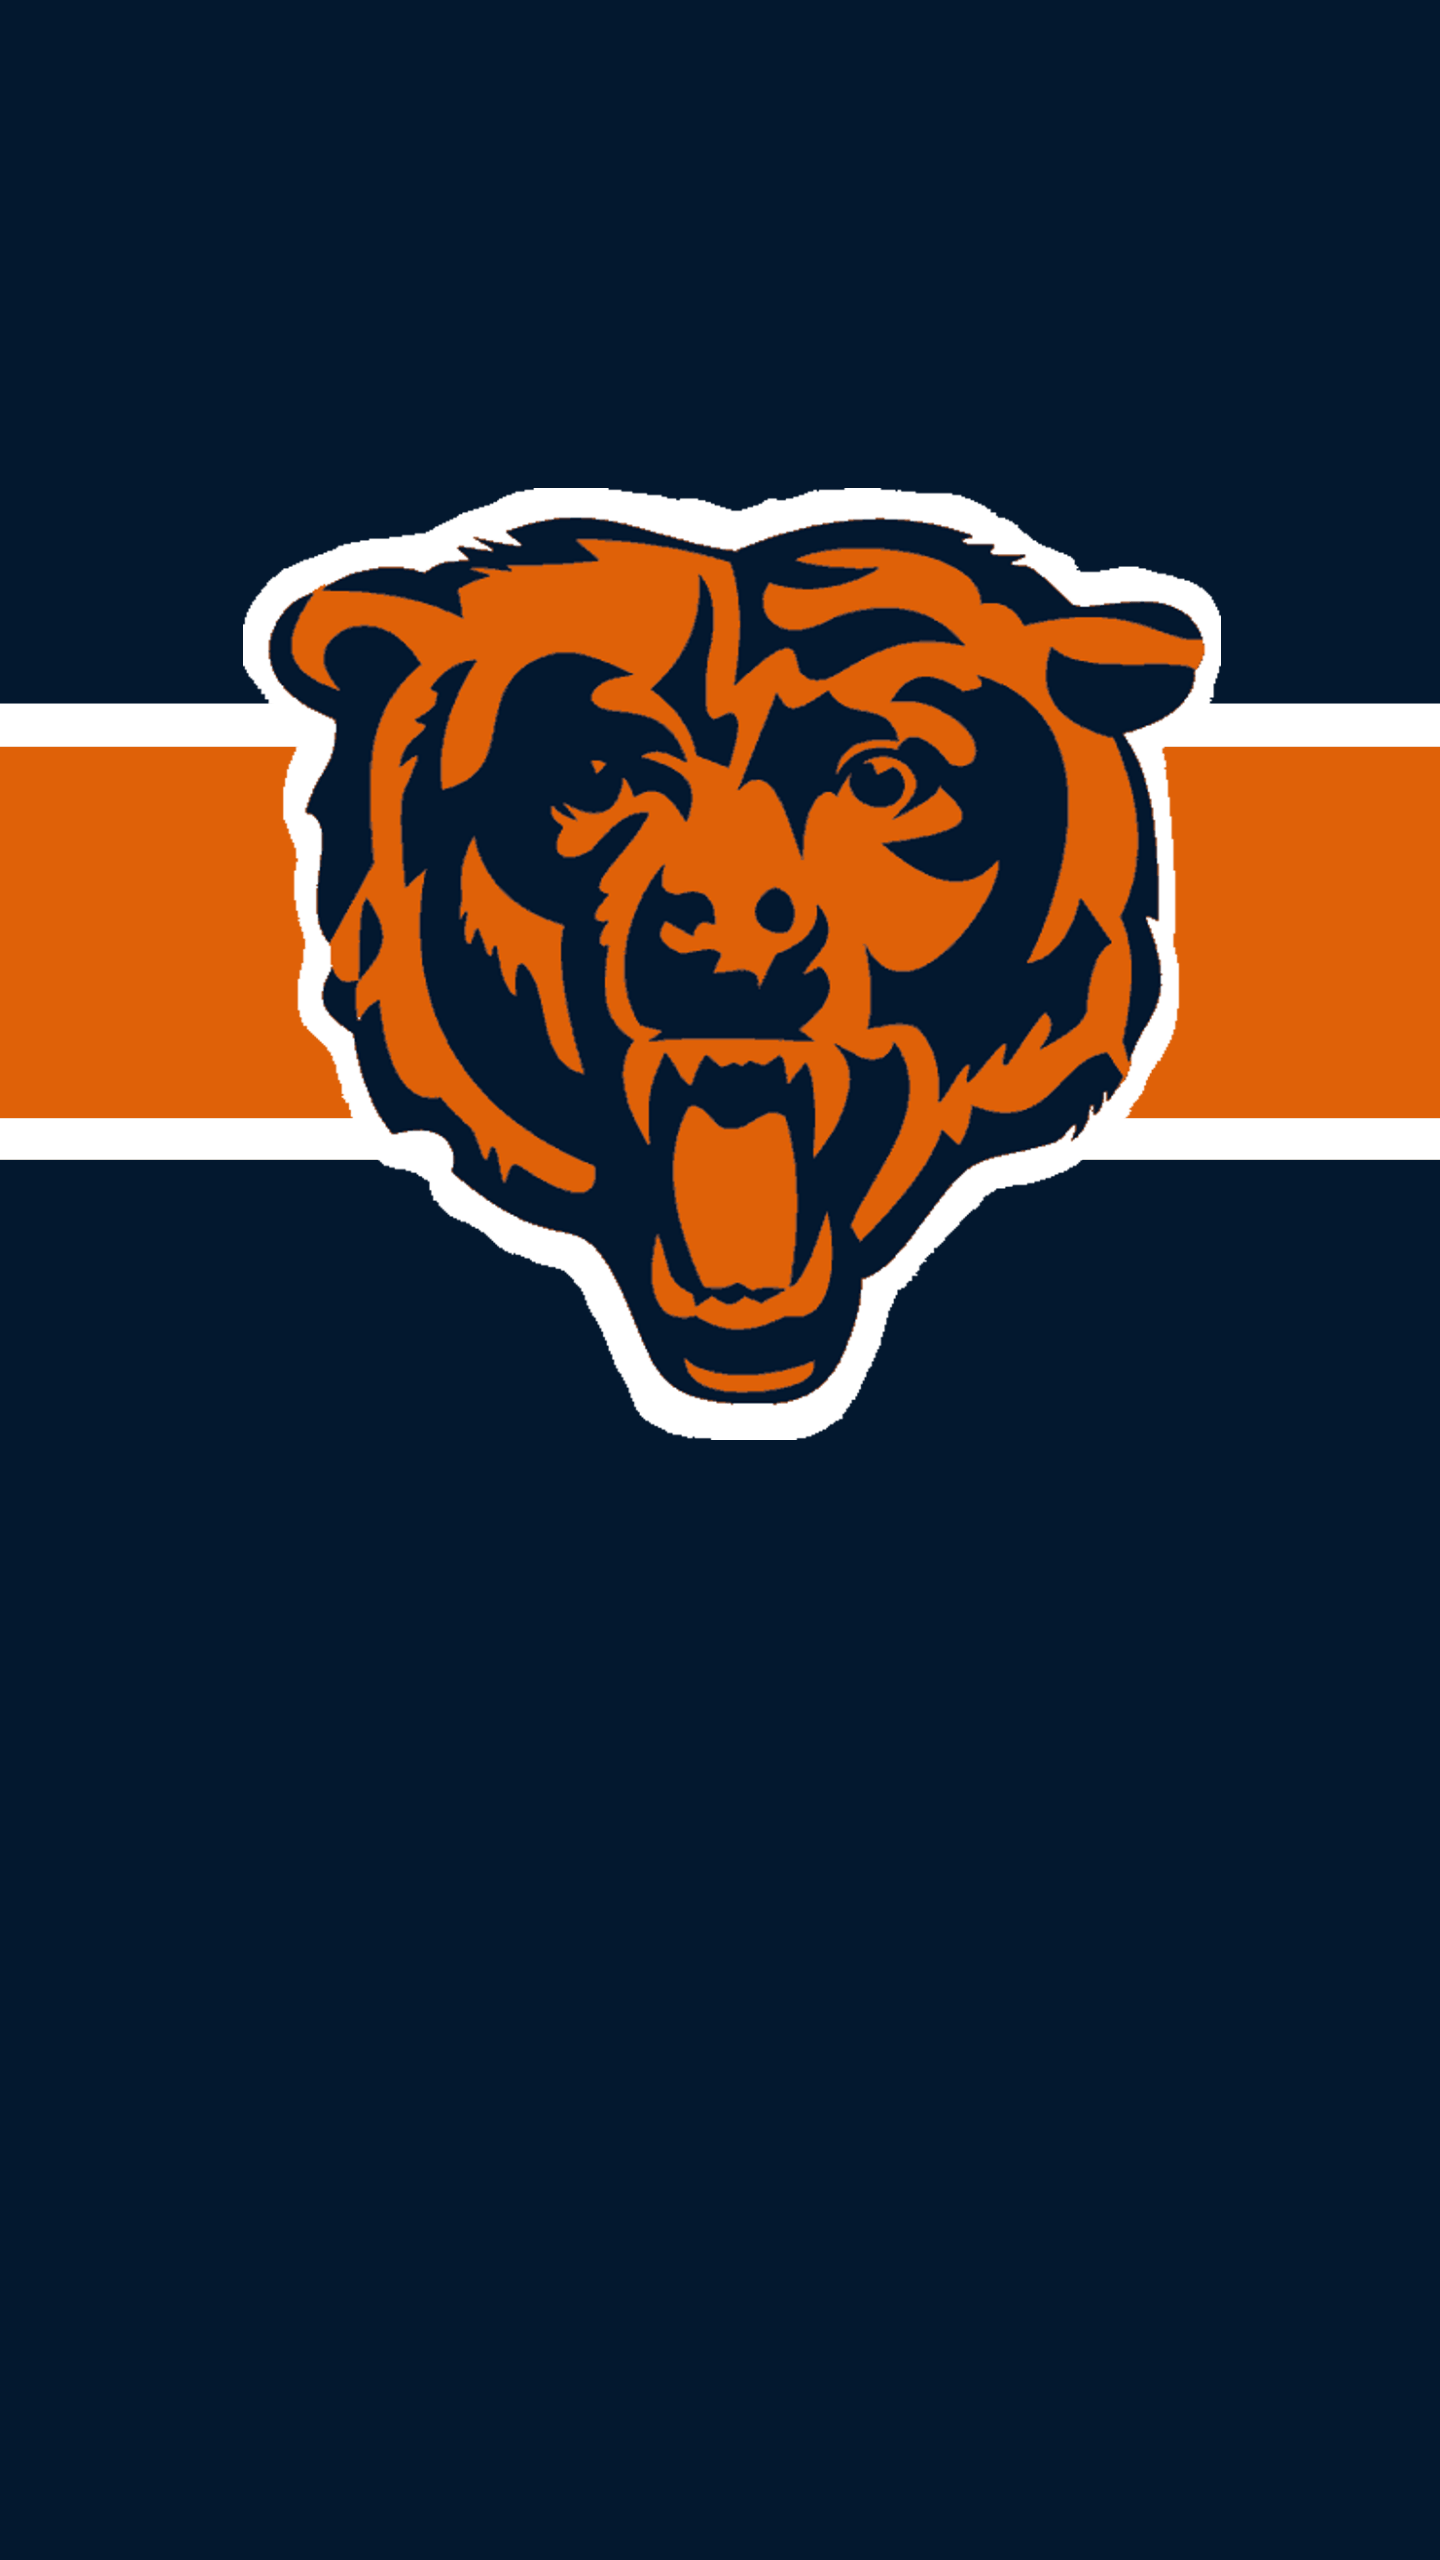 Chicago Bears 2017 Wallpapers - Wallpaper Cave